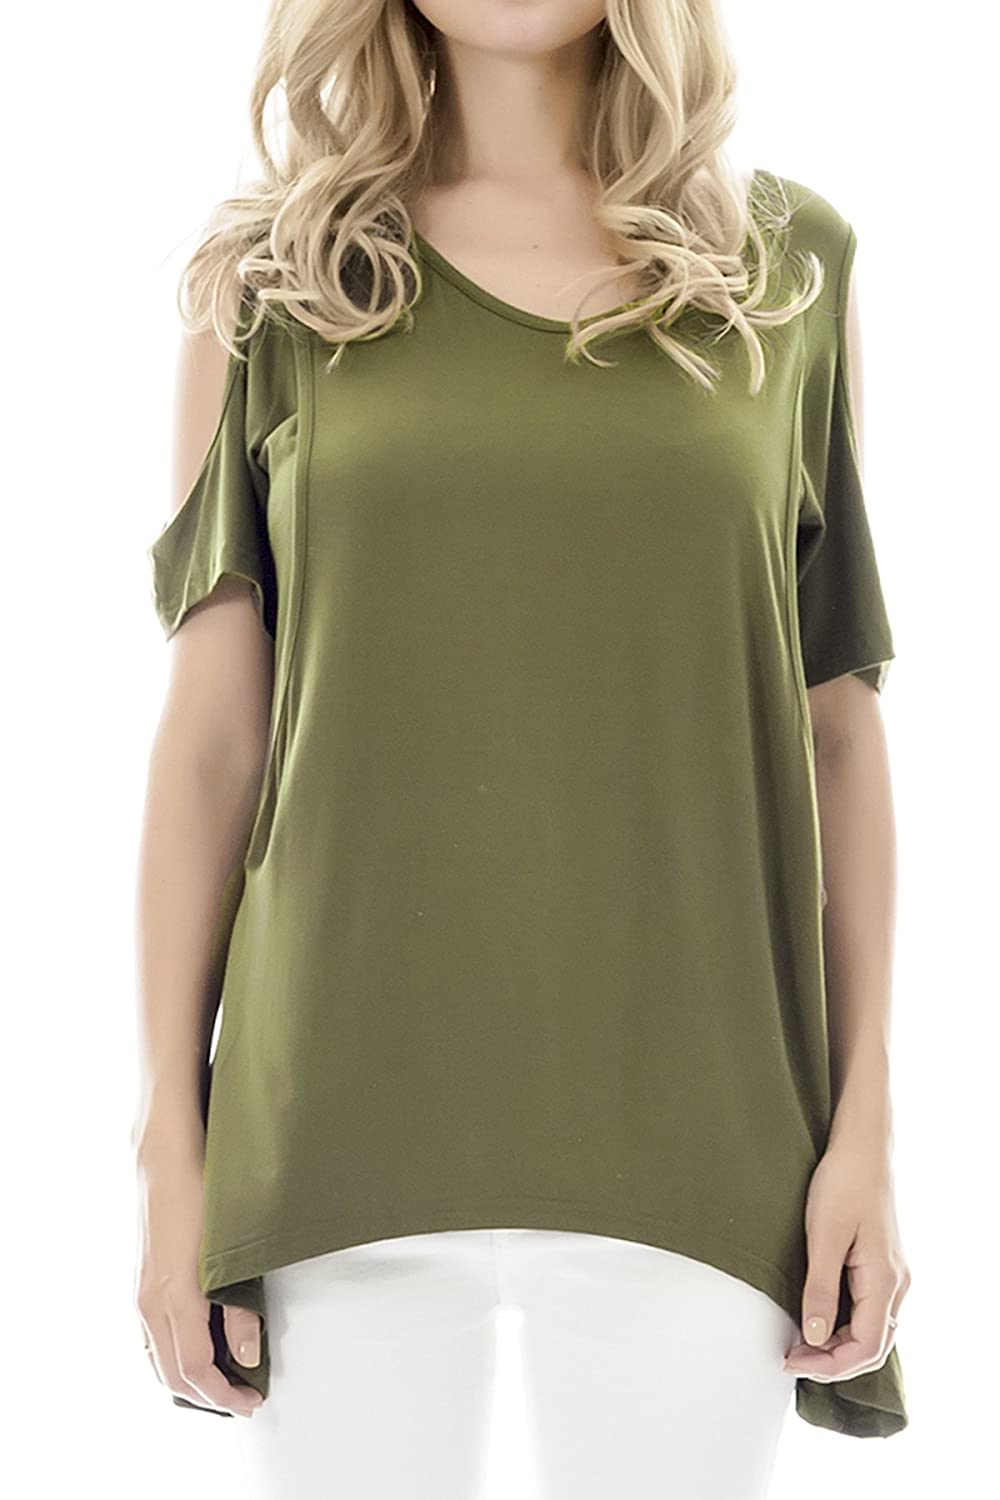 Smallshow Women's Nursing Tops Summer Cold Shoulder Breastfeeding Shirt